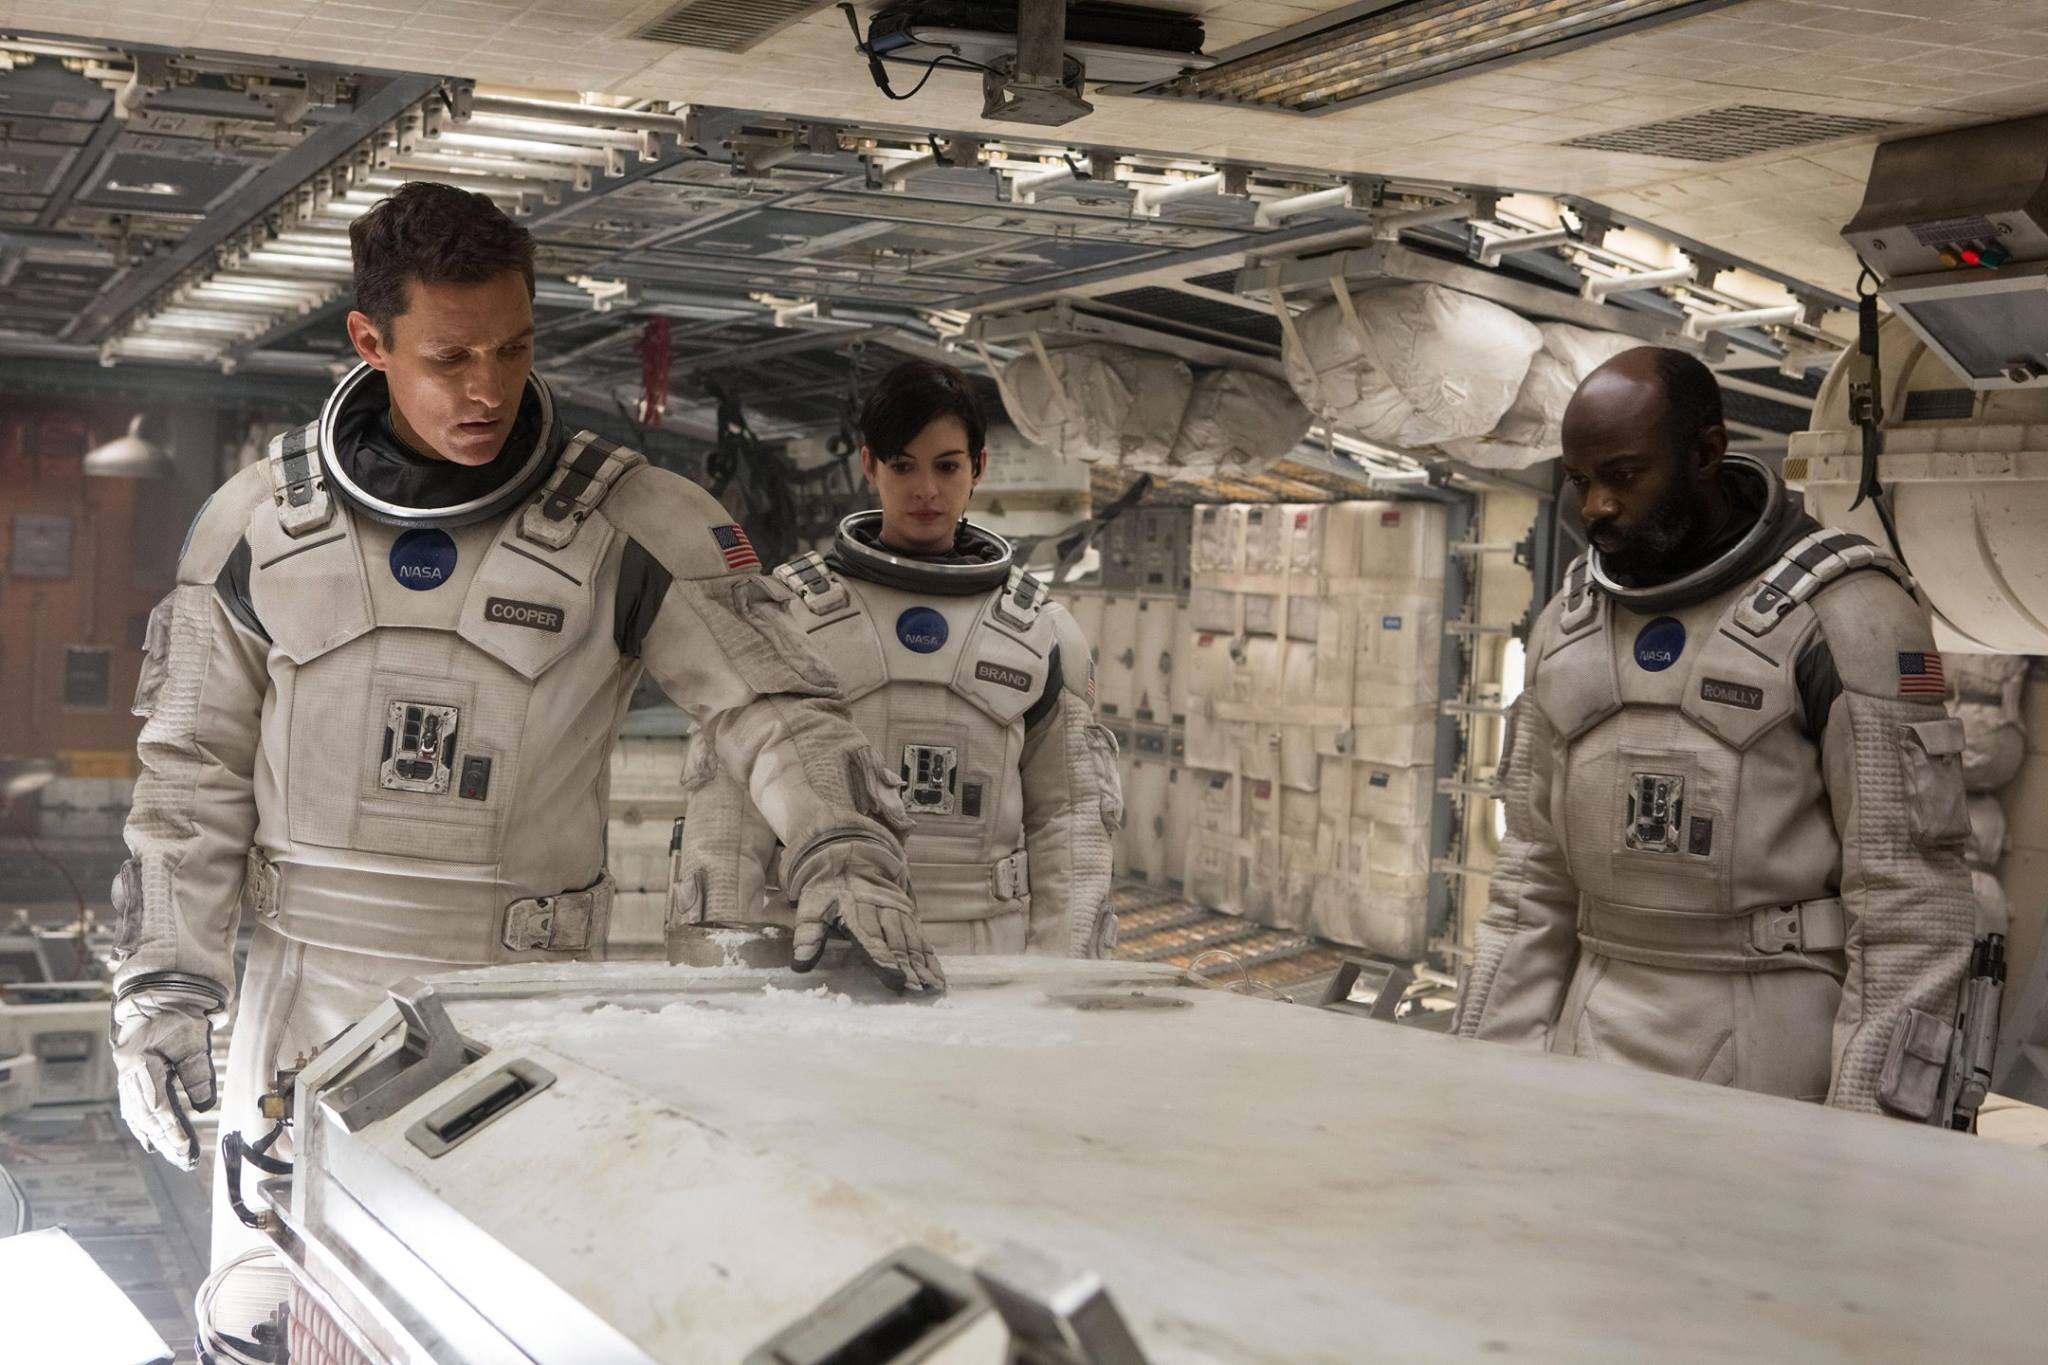 interstellar-has-over-an-hour-of-imax-footage